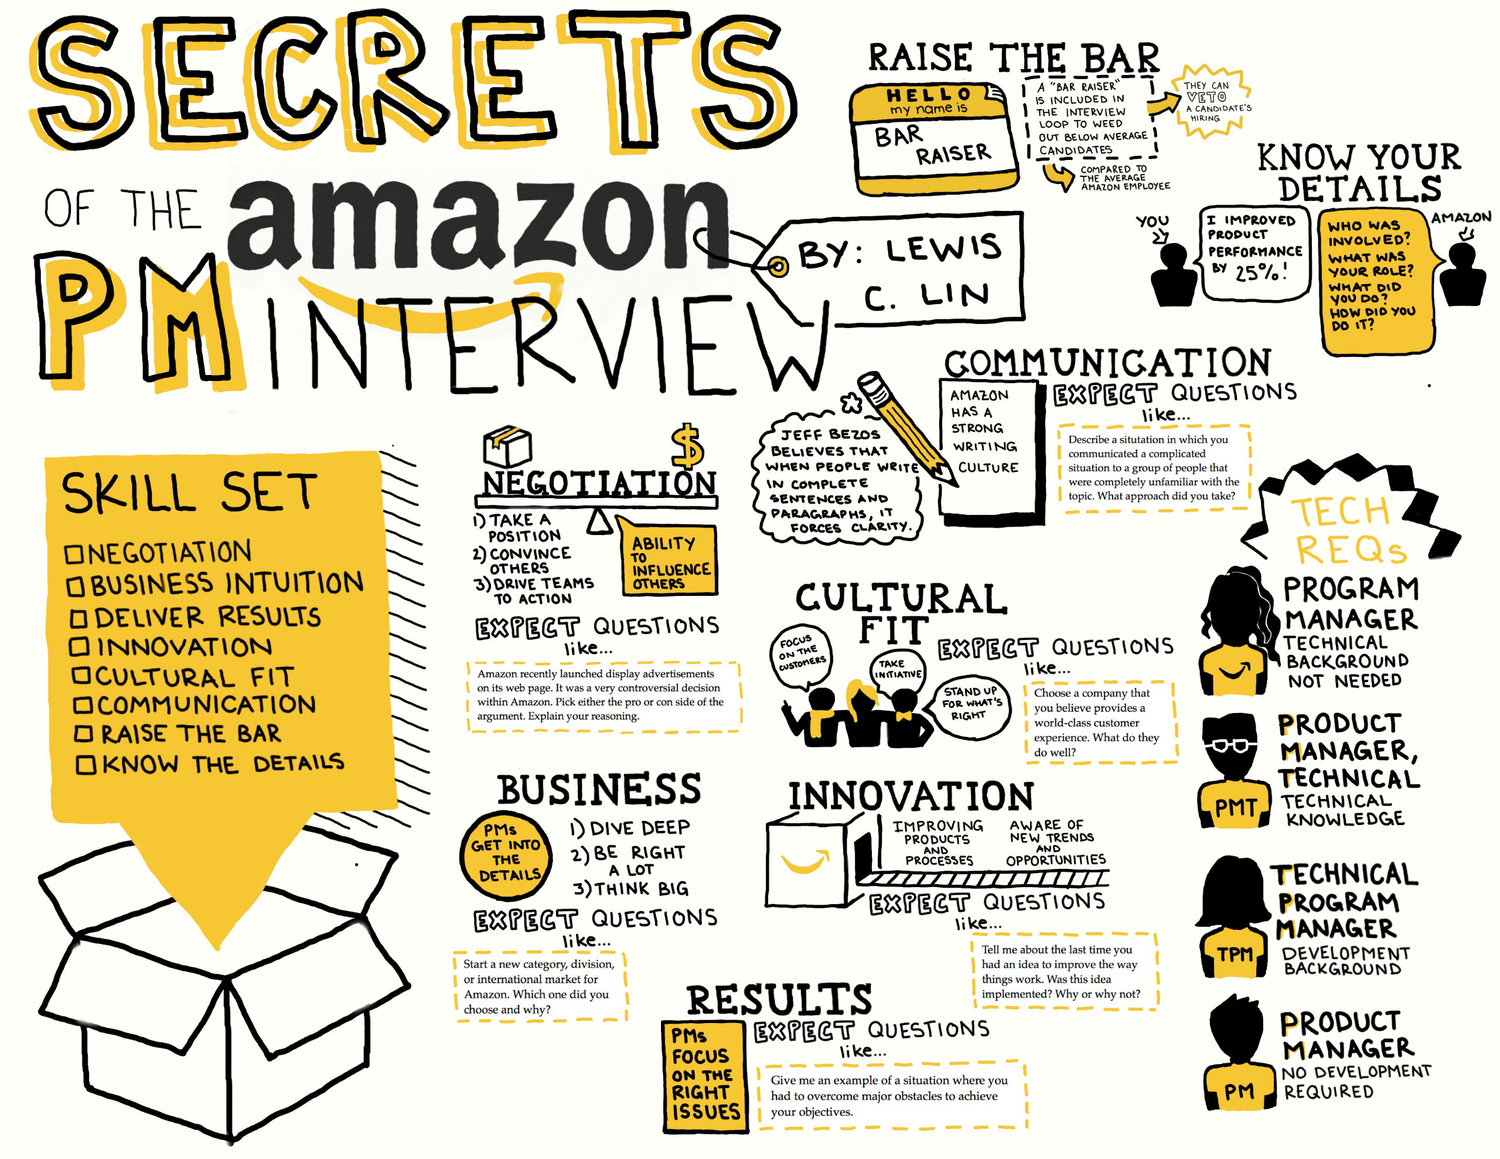 Amazon Product Manager Interview Cheat Sheet — Lewis C  Lin